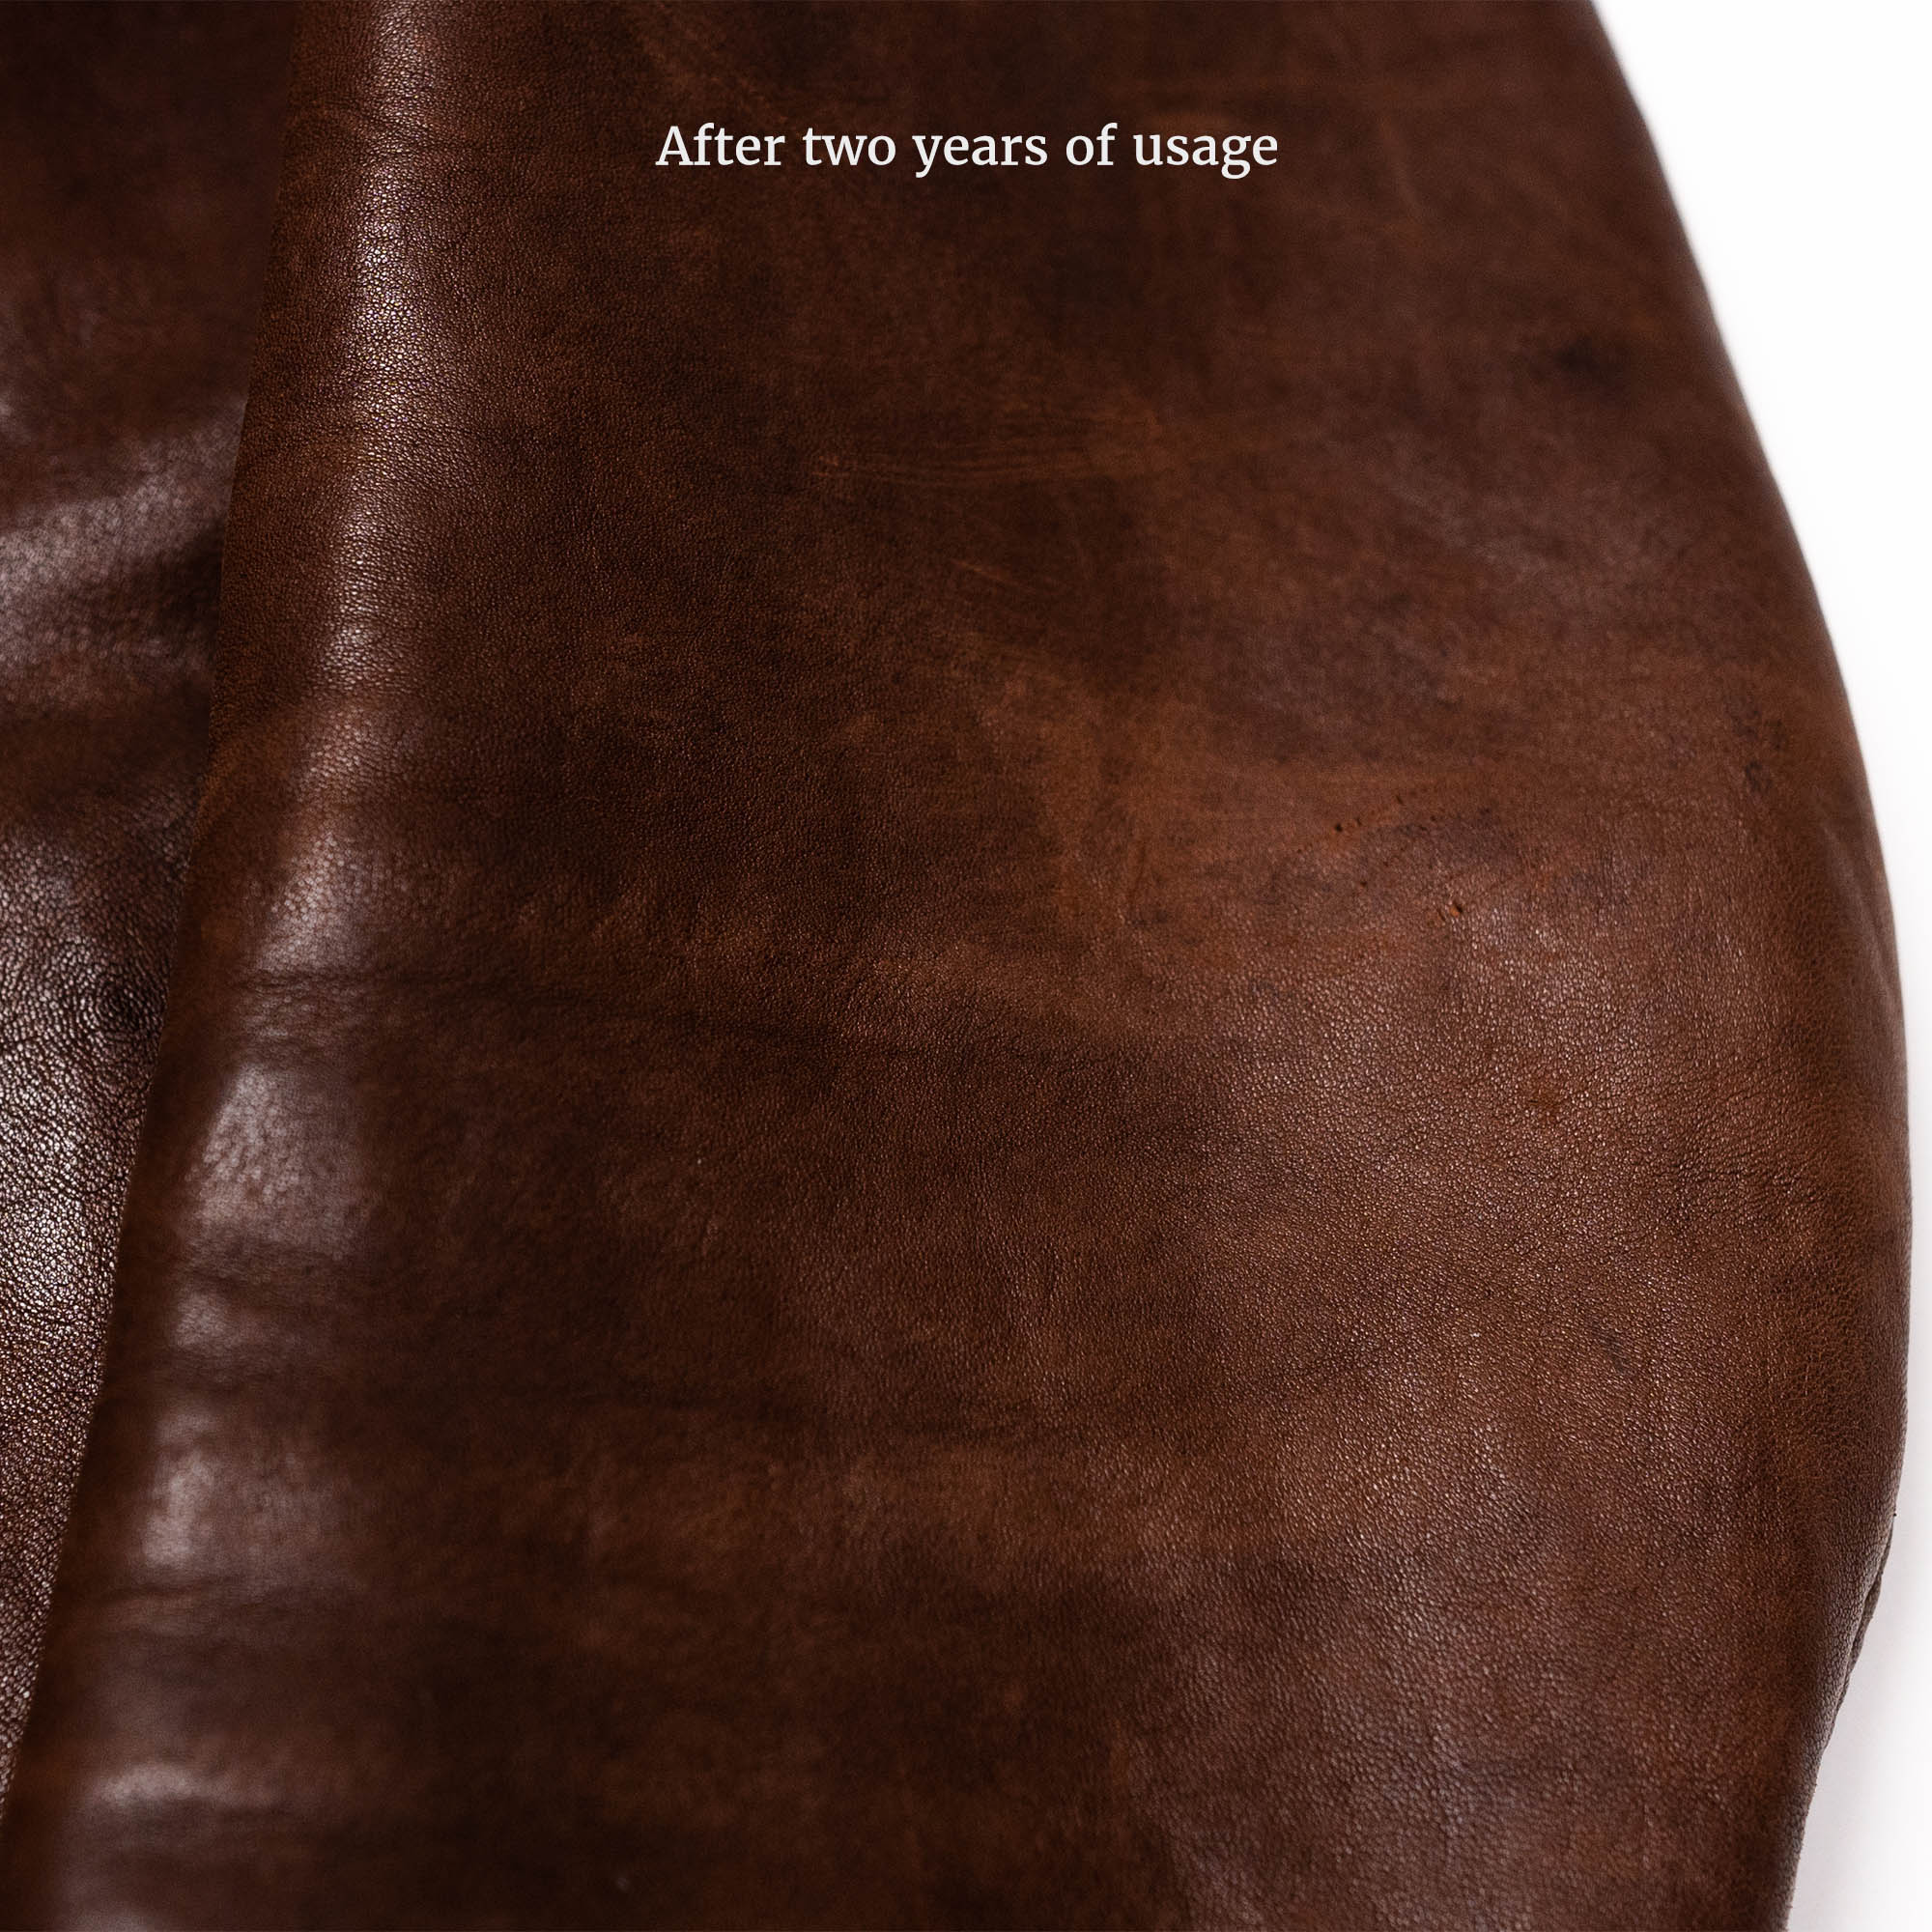 shangri-la-heritage-cafe-racer-brown-lambskin-jacket-still-life-new-sleeve-detail-used